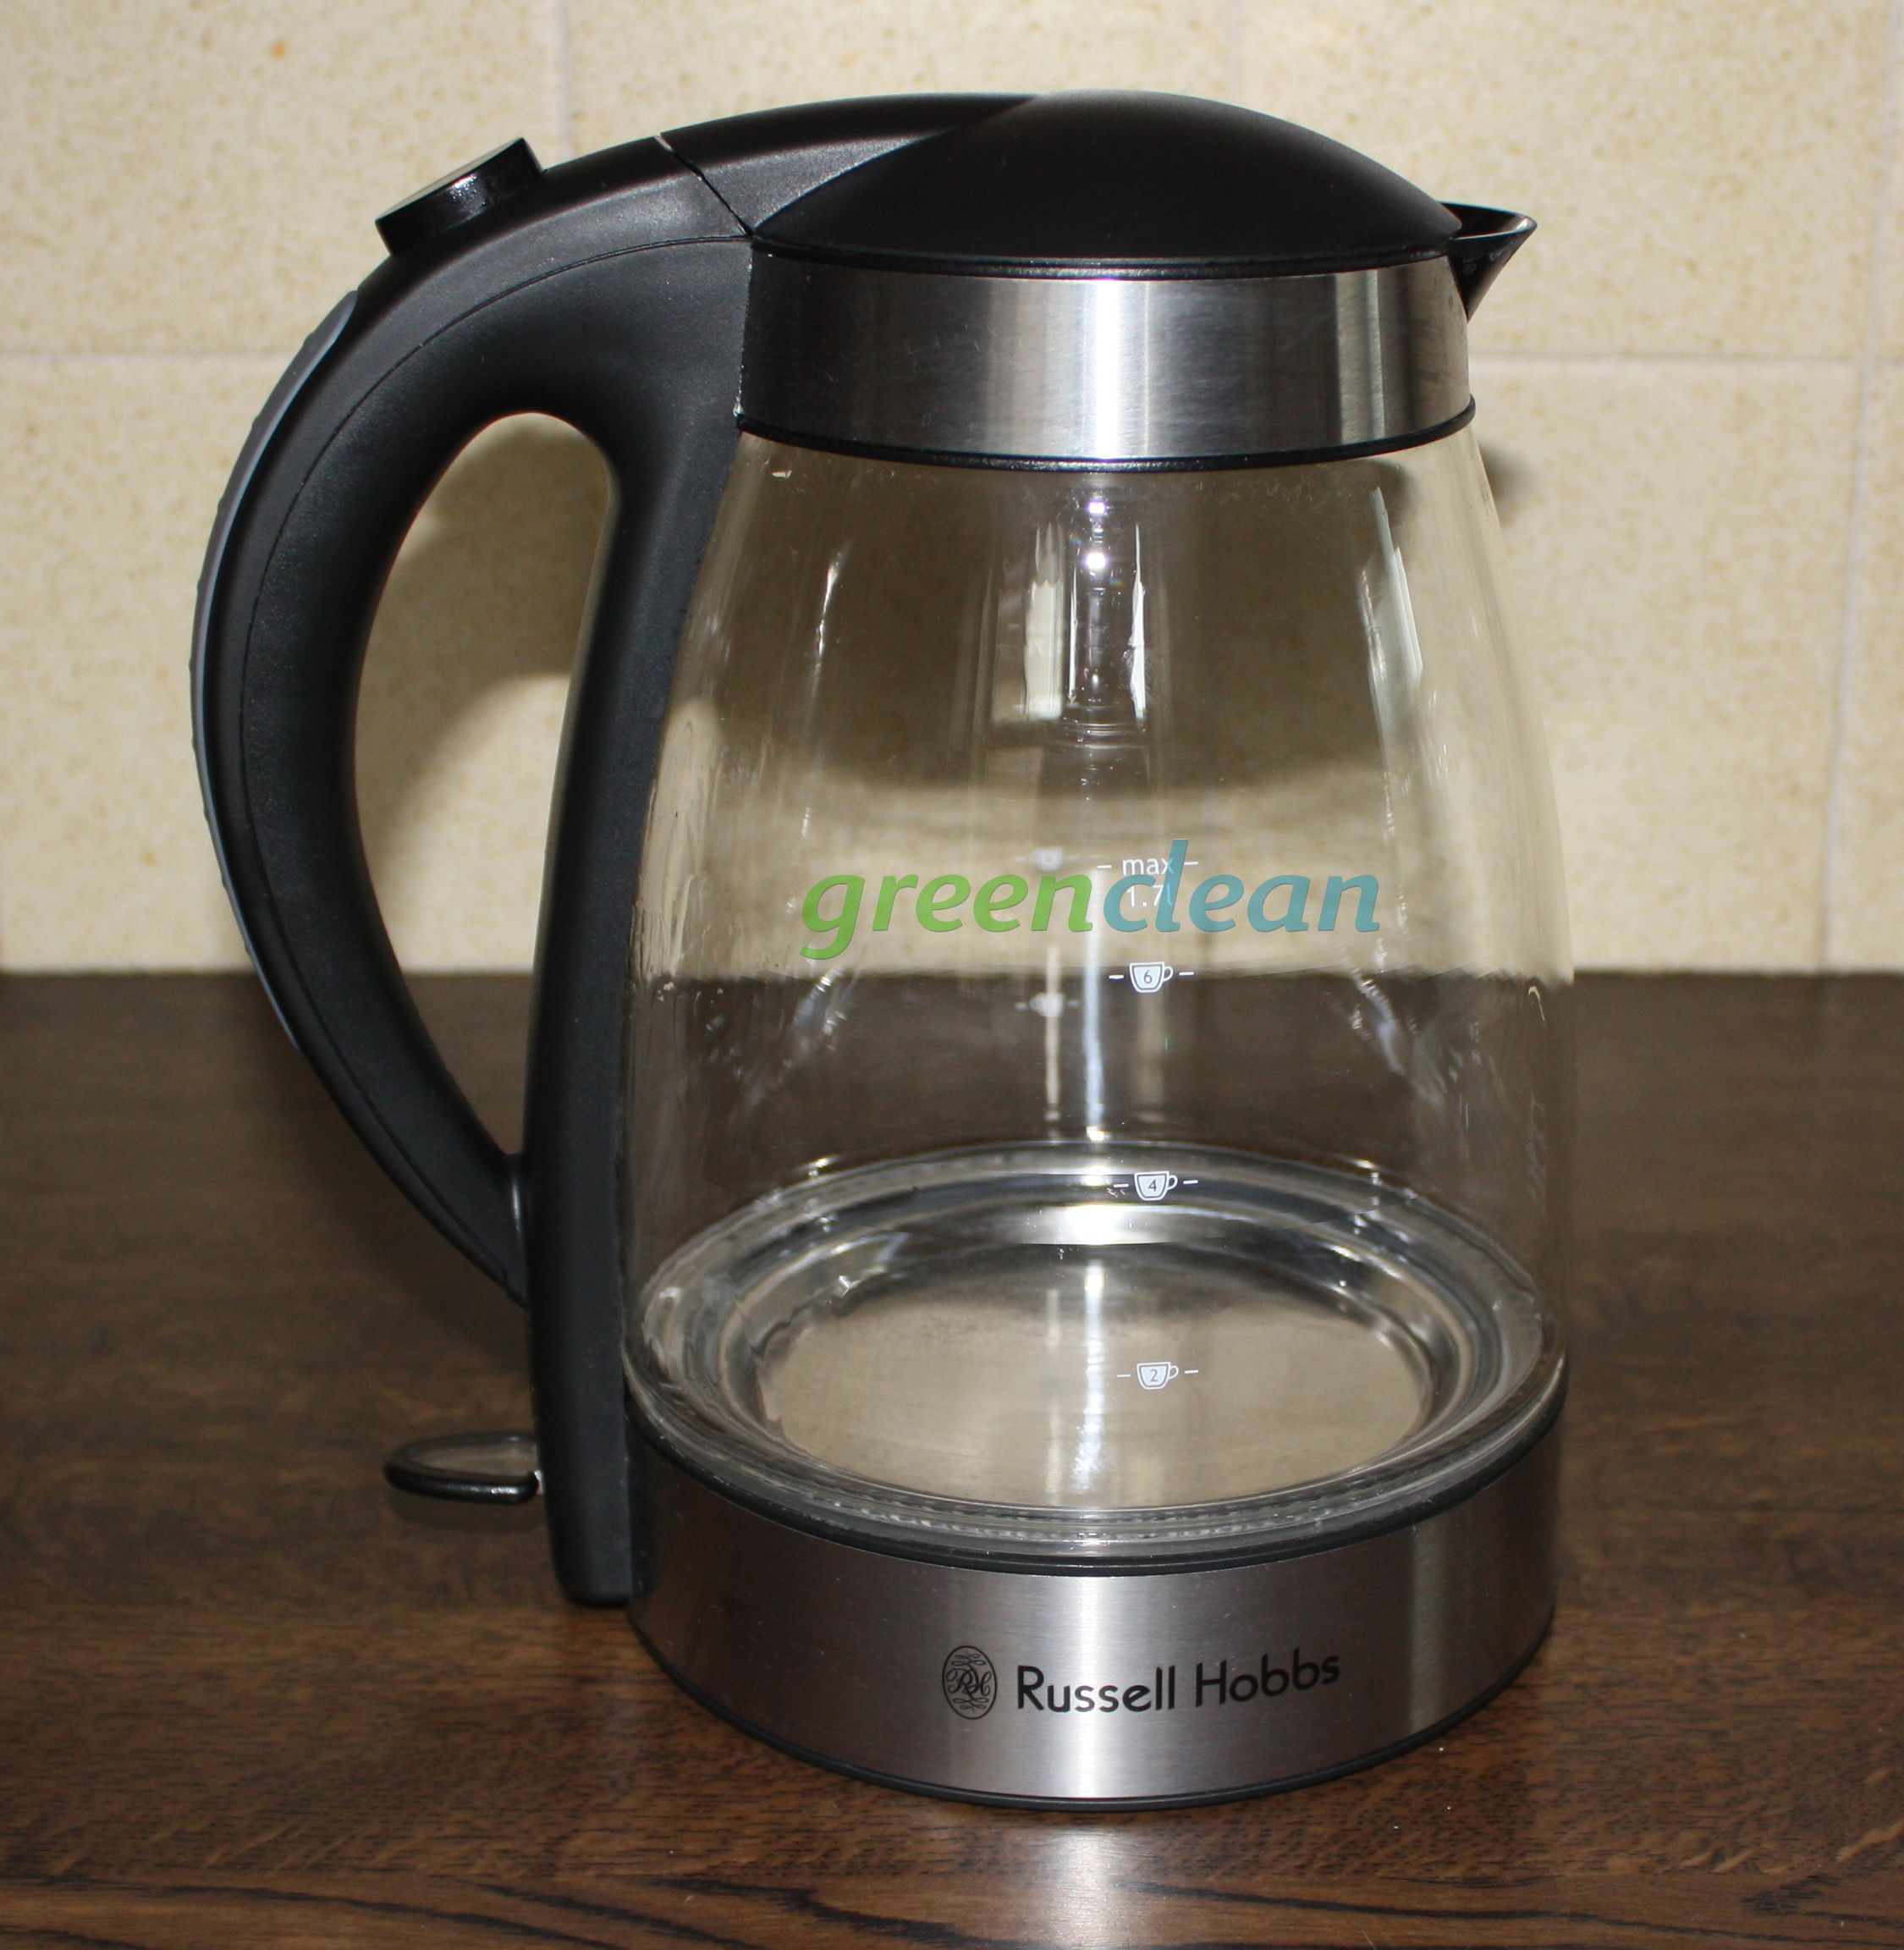 How To Remove Limescale From Kettle >> How To Remove Limescale From An Eletric Kettle Using Vinegar Only